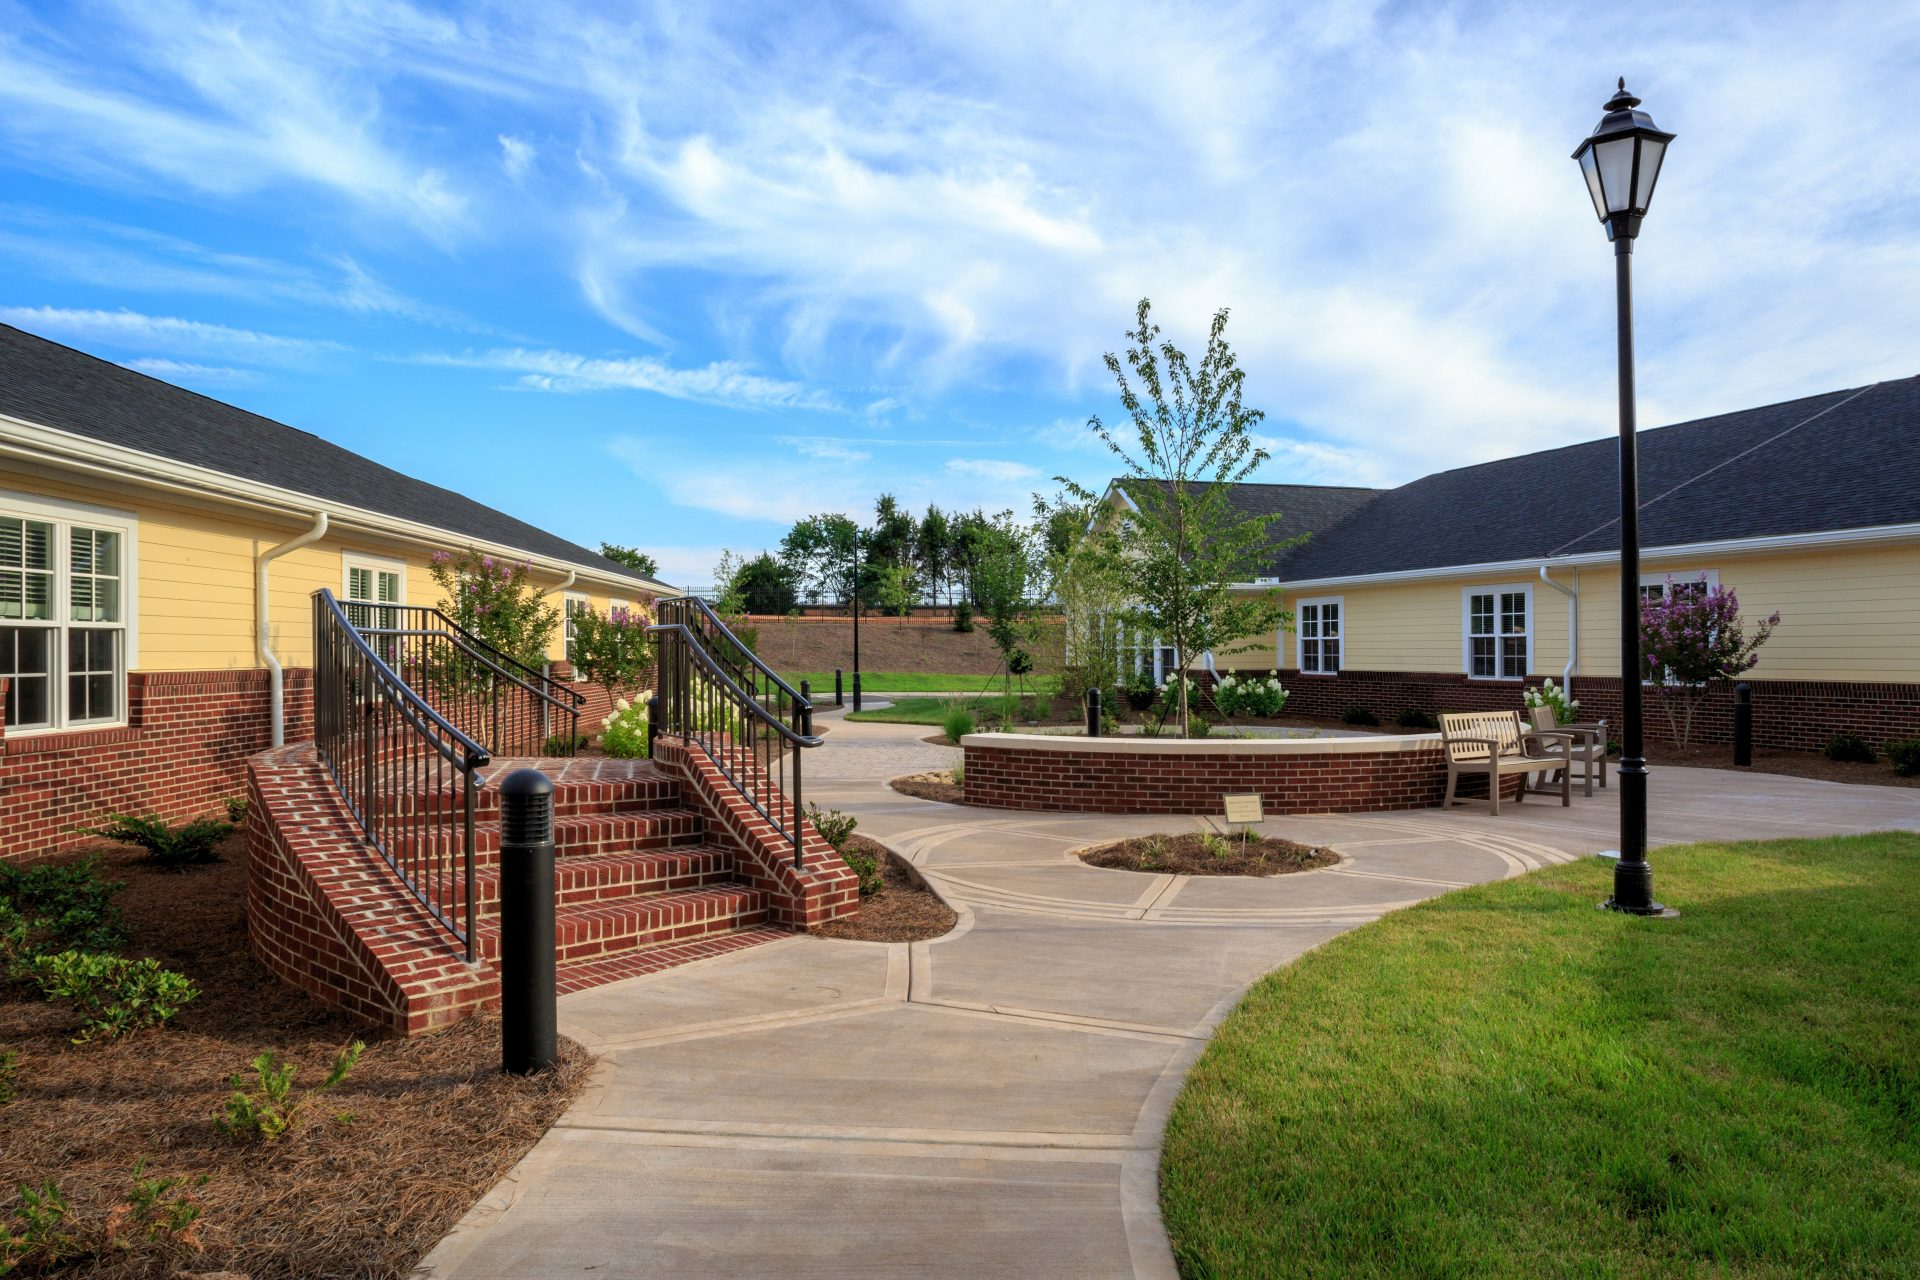 Salemtowne's outdoor courtyard for residents, with walkways and attractive landscaping.